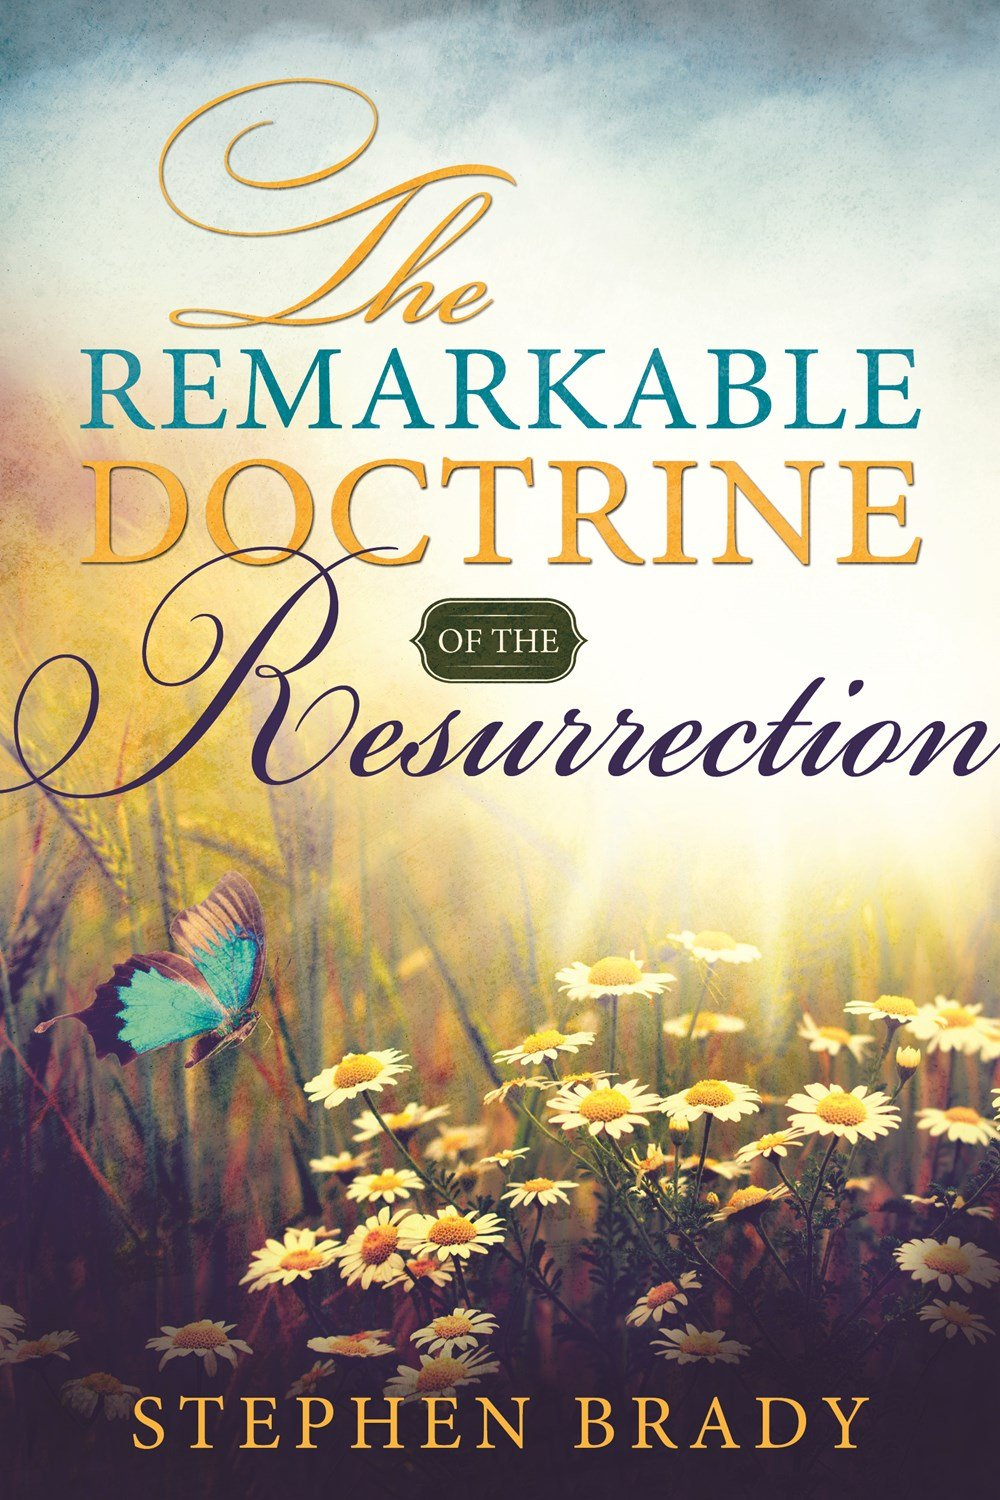 an analysis of the concept of resurrection in the christian doctrine The doctrine of the resurrection, traditionally the central belief of christianity, finds little practical consensus among many christians today however, the book of mormon provides not only marvelous doctrinal clarity but also a powerful witness of the resurrection of jesus and of all humankind.